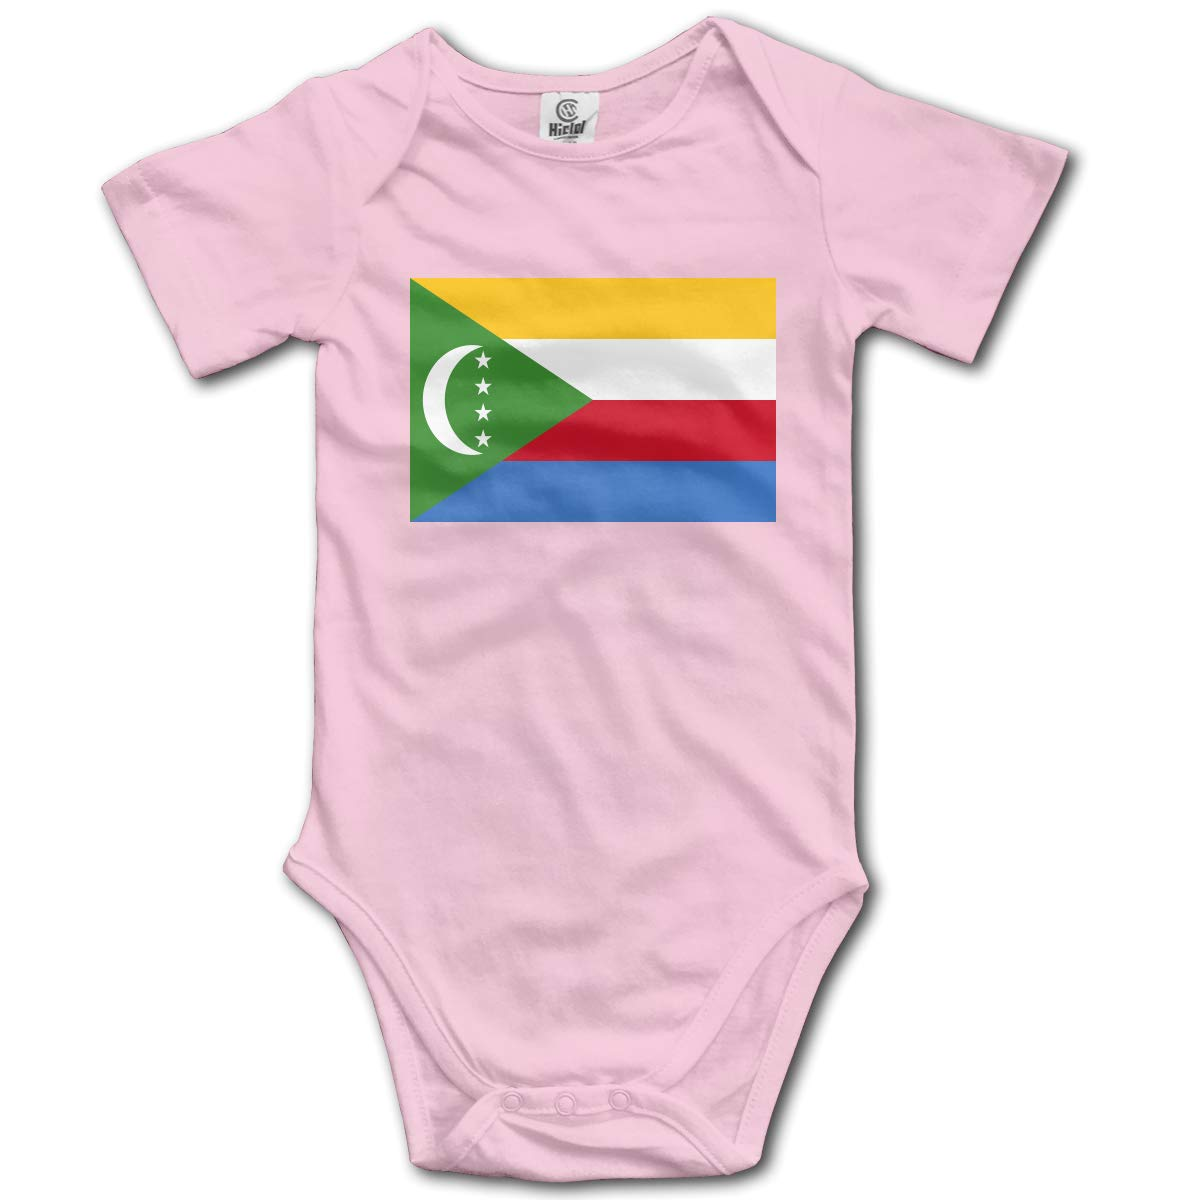 CUTEDWARF Baby Short-Sleeve Onesies Flag of The Comoros Bodysuit Baby Outfits